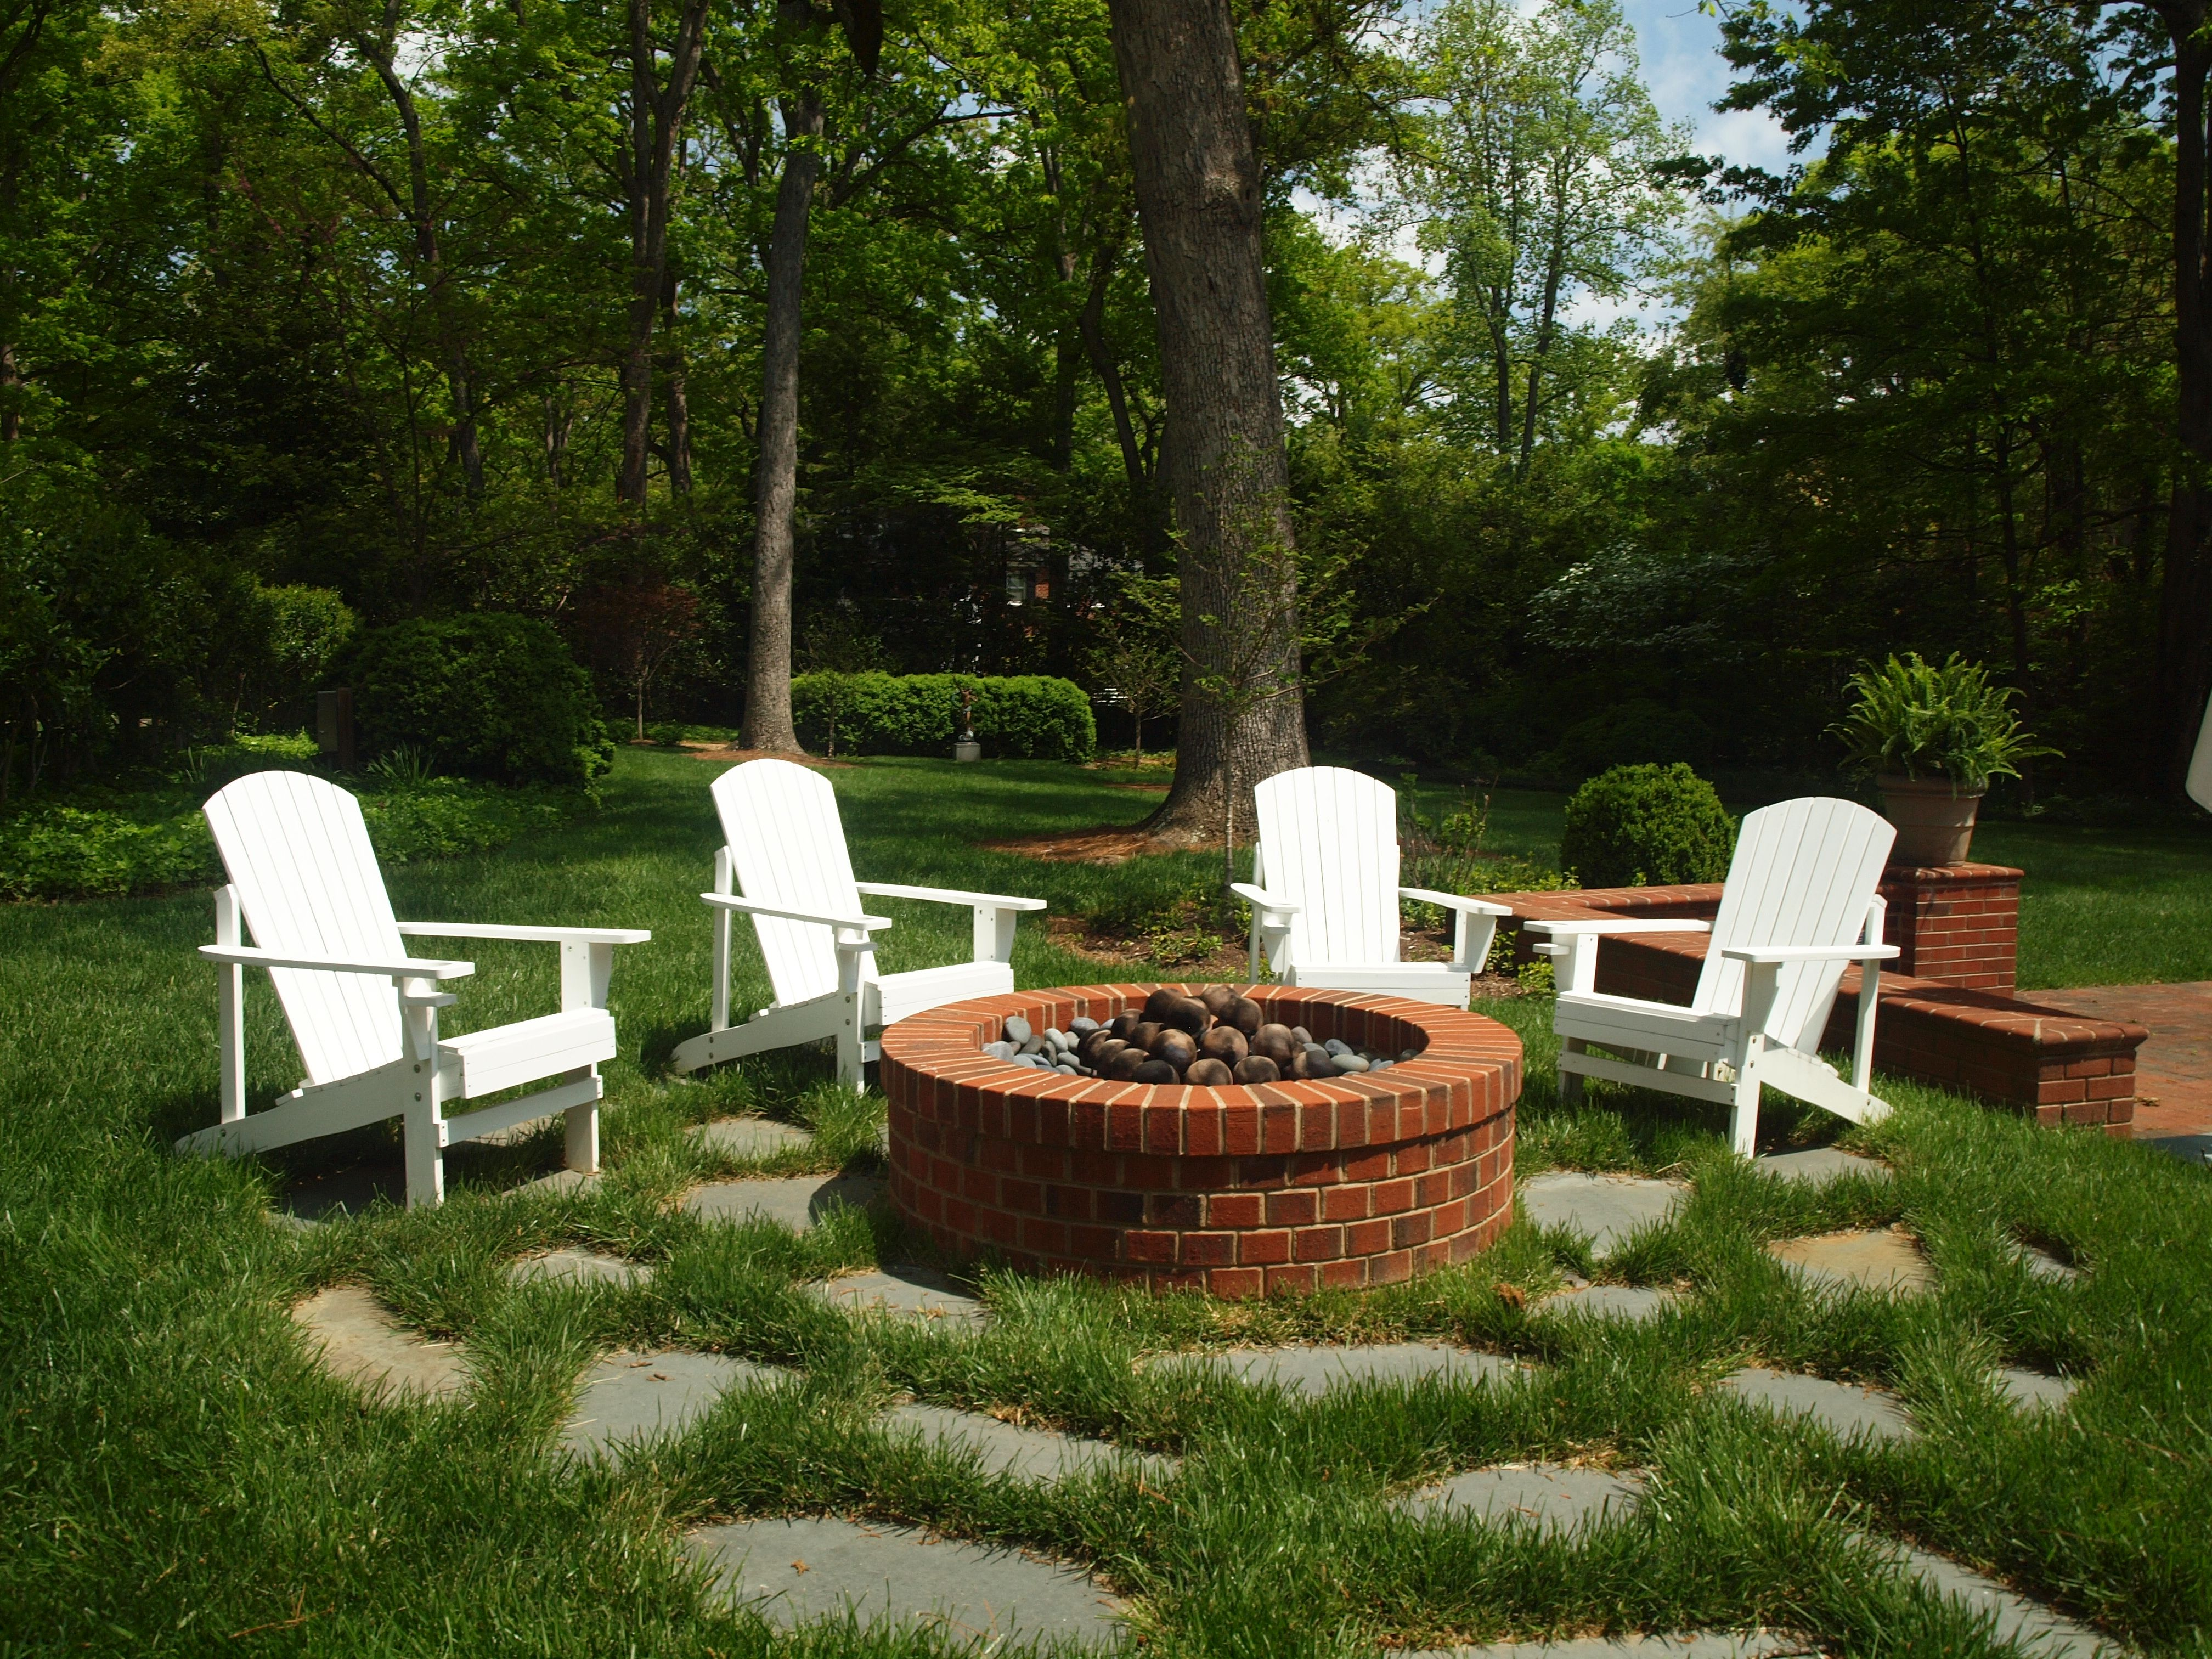 adirondack chairs provide comfortable seating around the fire pit